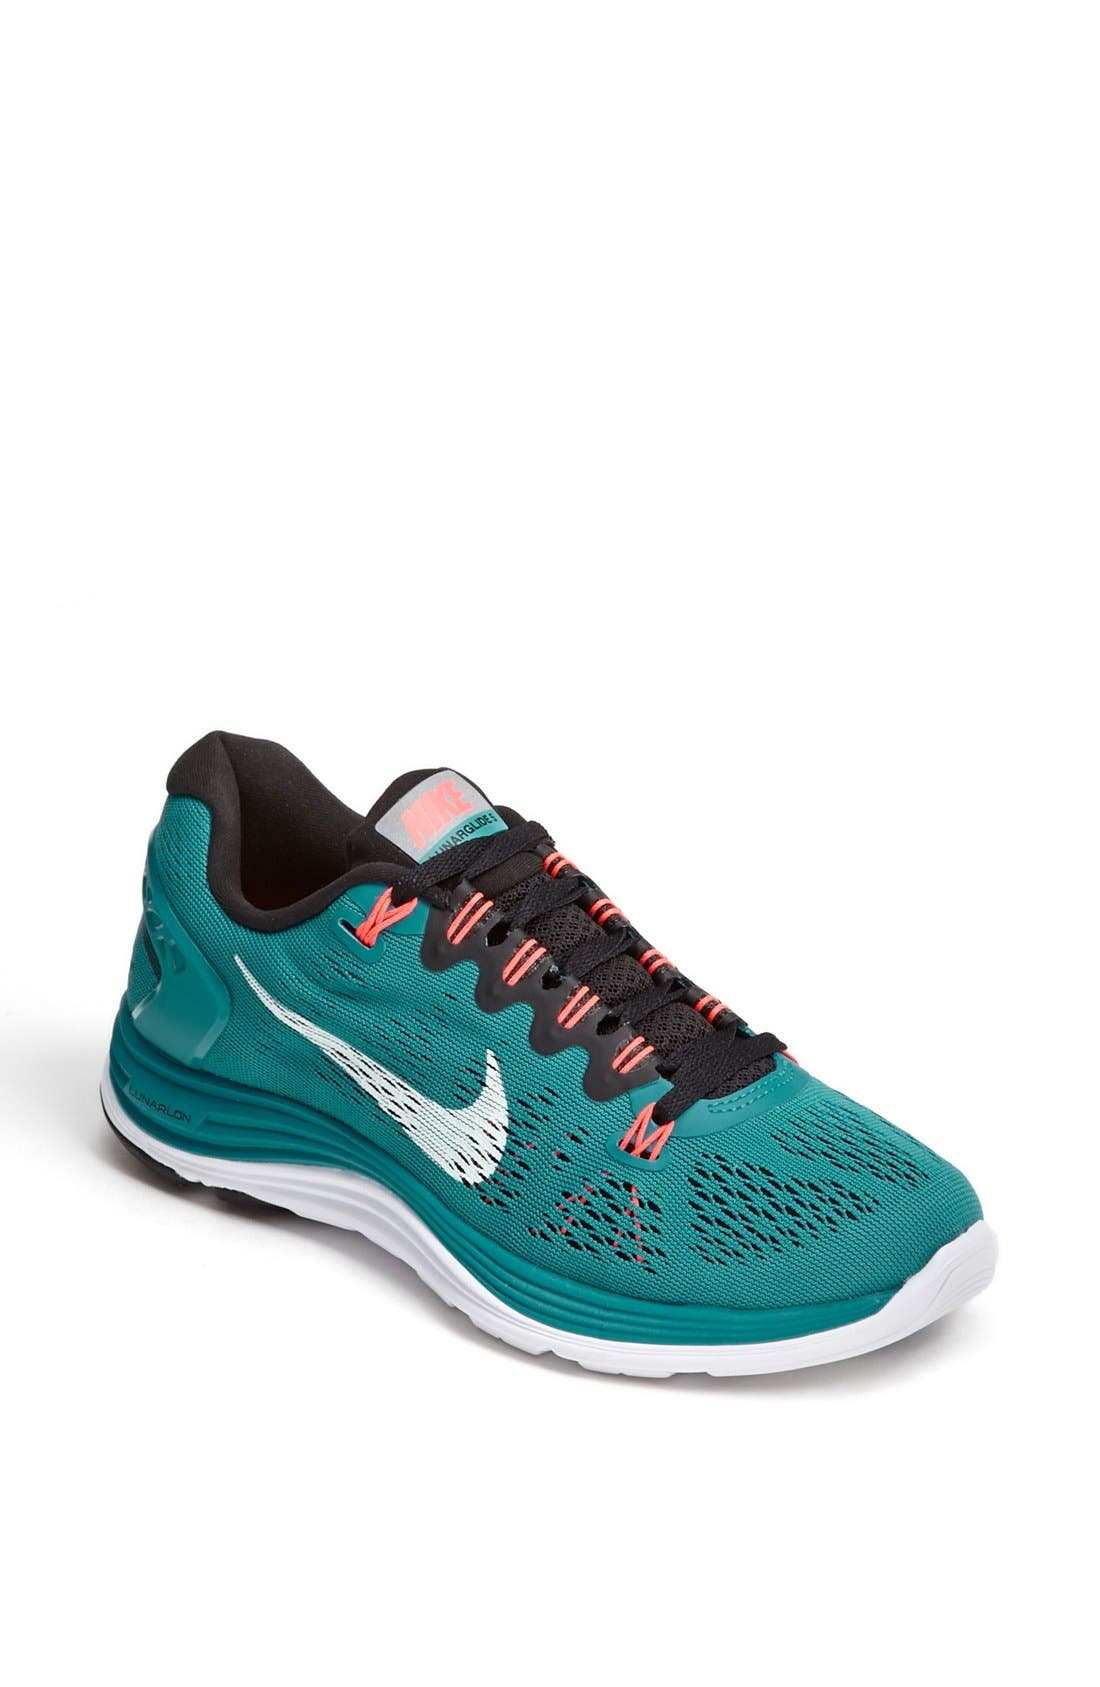 Alternate Image 1 Selected - Nike 'LunarGlide 5' Running Shoe (Women)